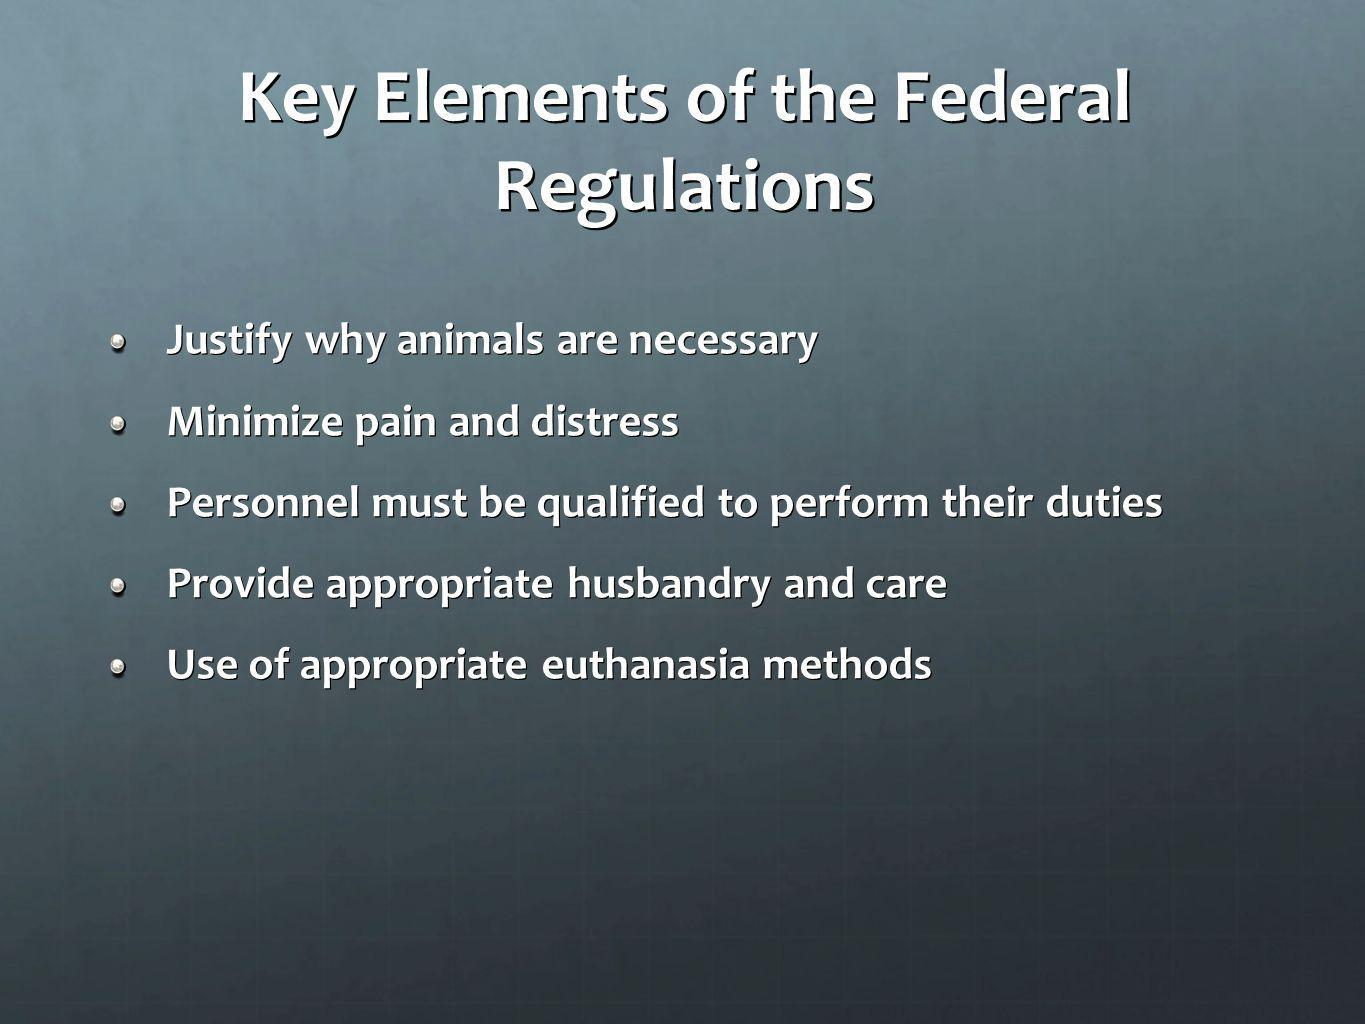 Key Elements of the Federal Regulations